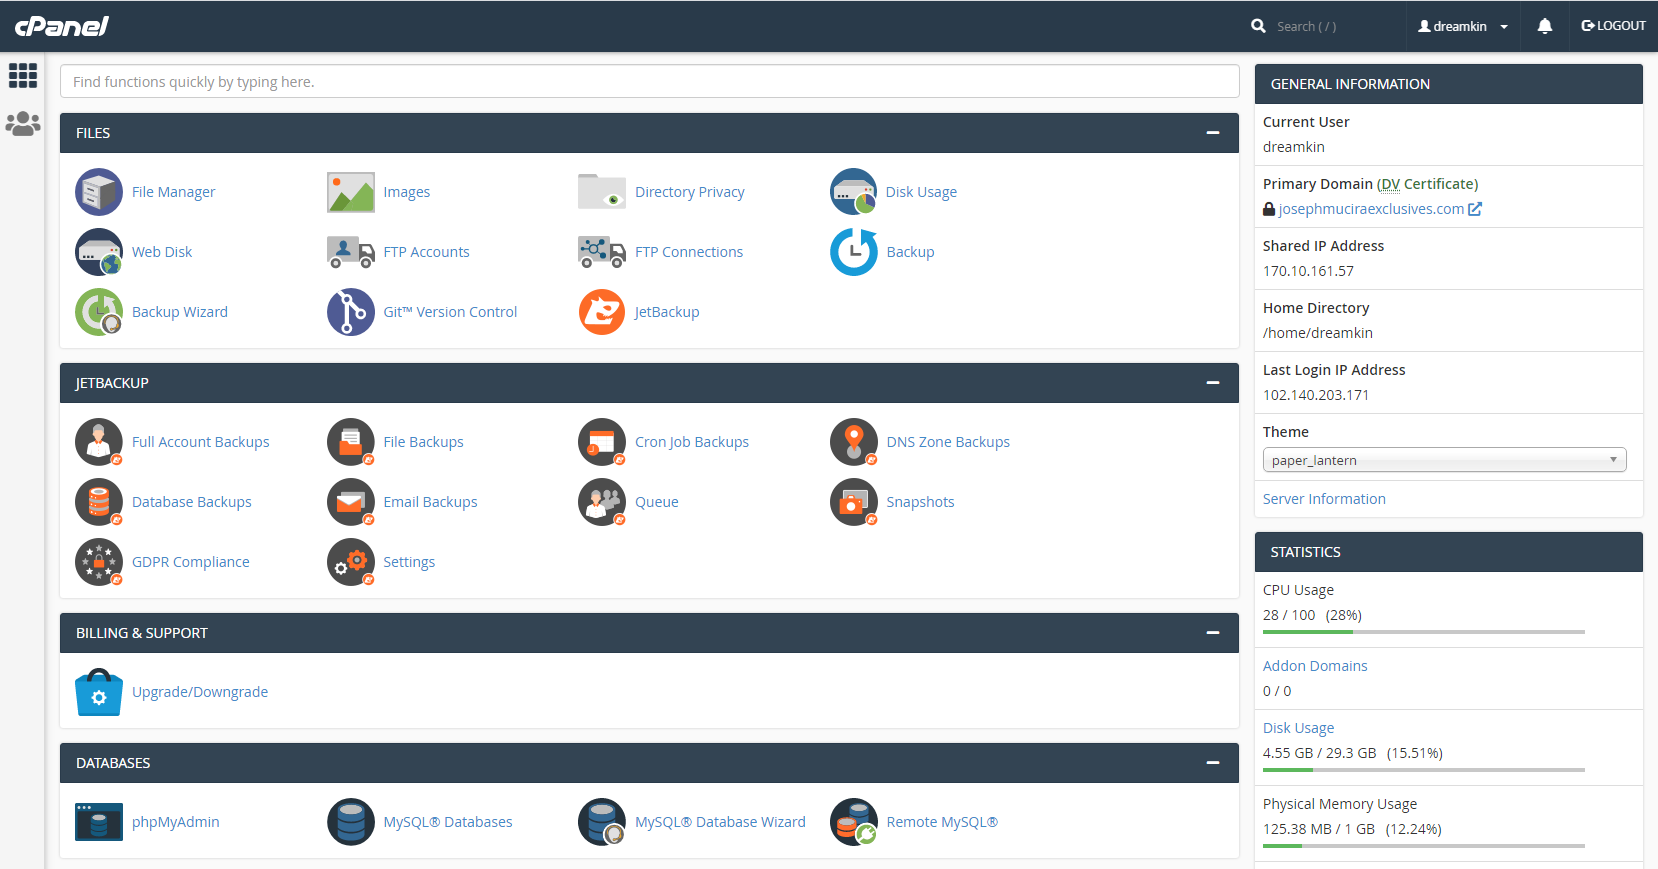 How does the cPanel Dashboard look like?